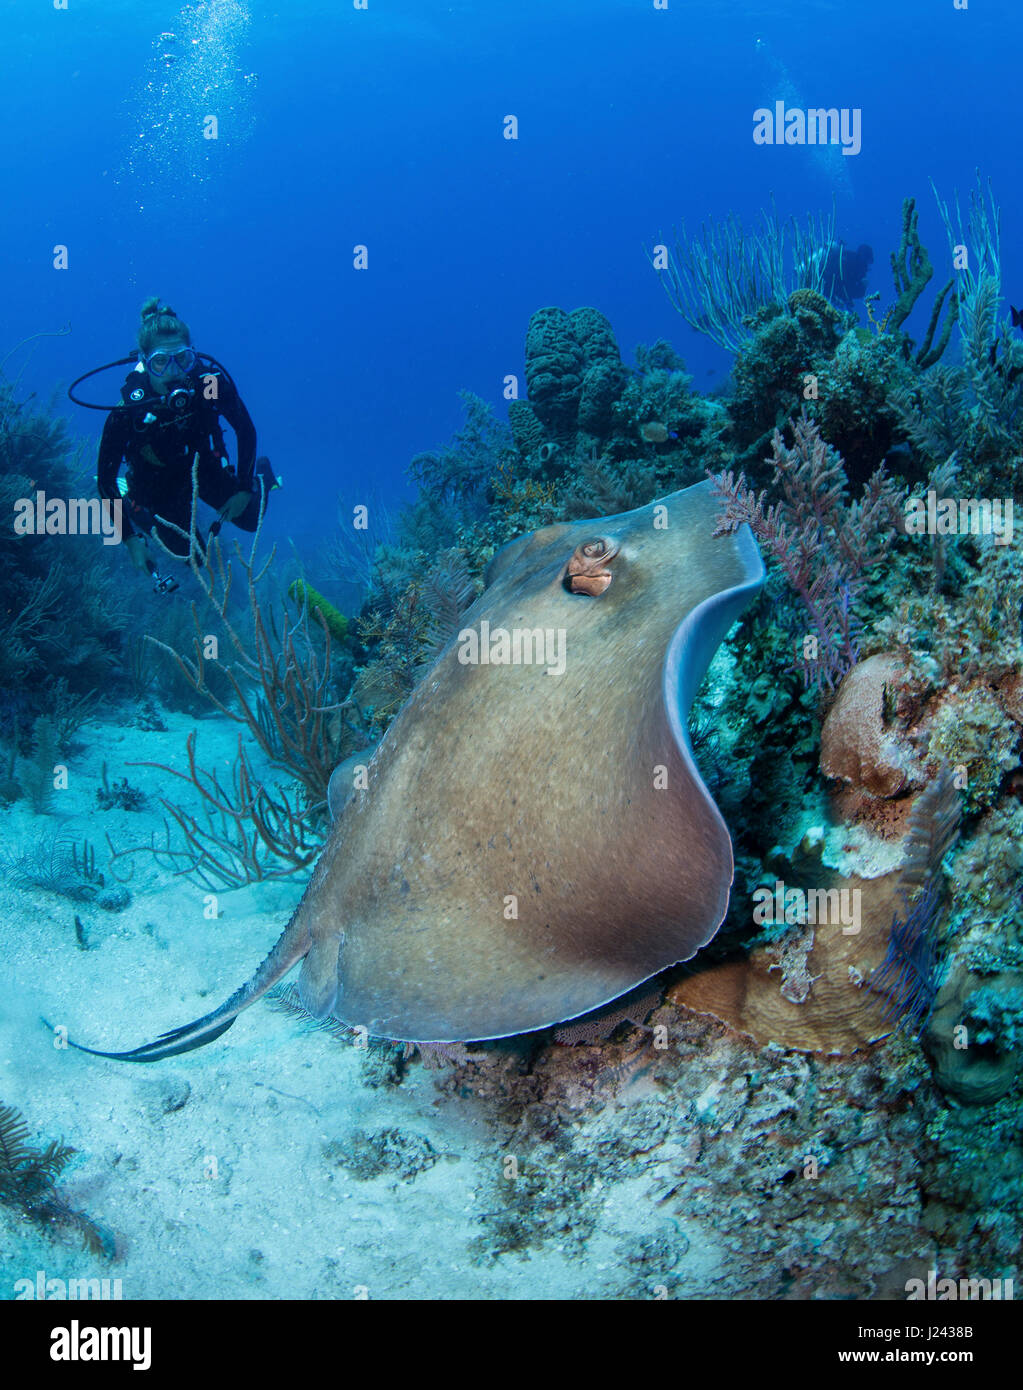 Scuba diver watches stingray as it swims over reef. - Stock-Bilder